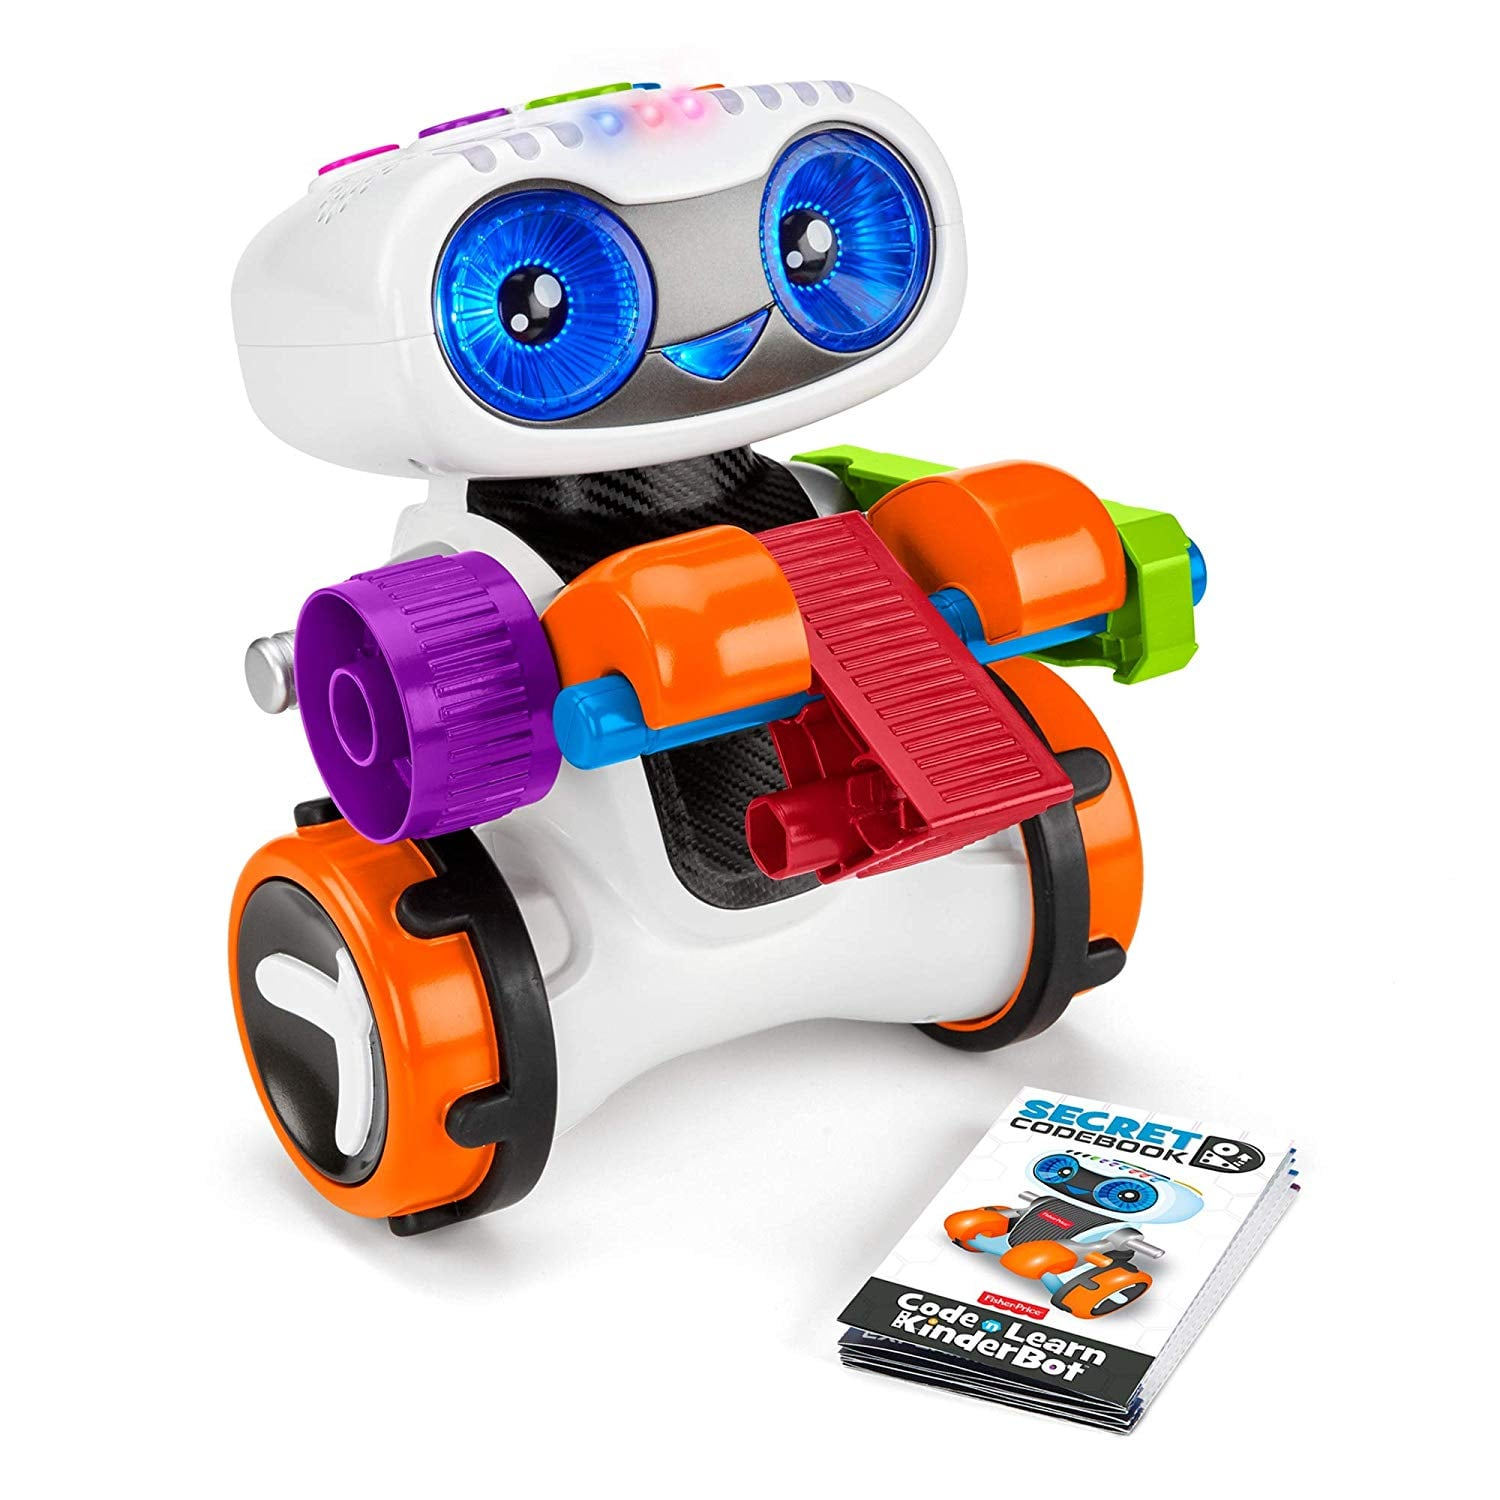 2019 Holiday Toy List Amazon Hottest Toys Popsugar Family